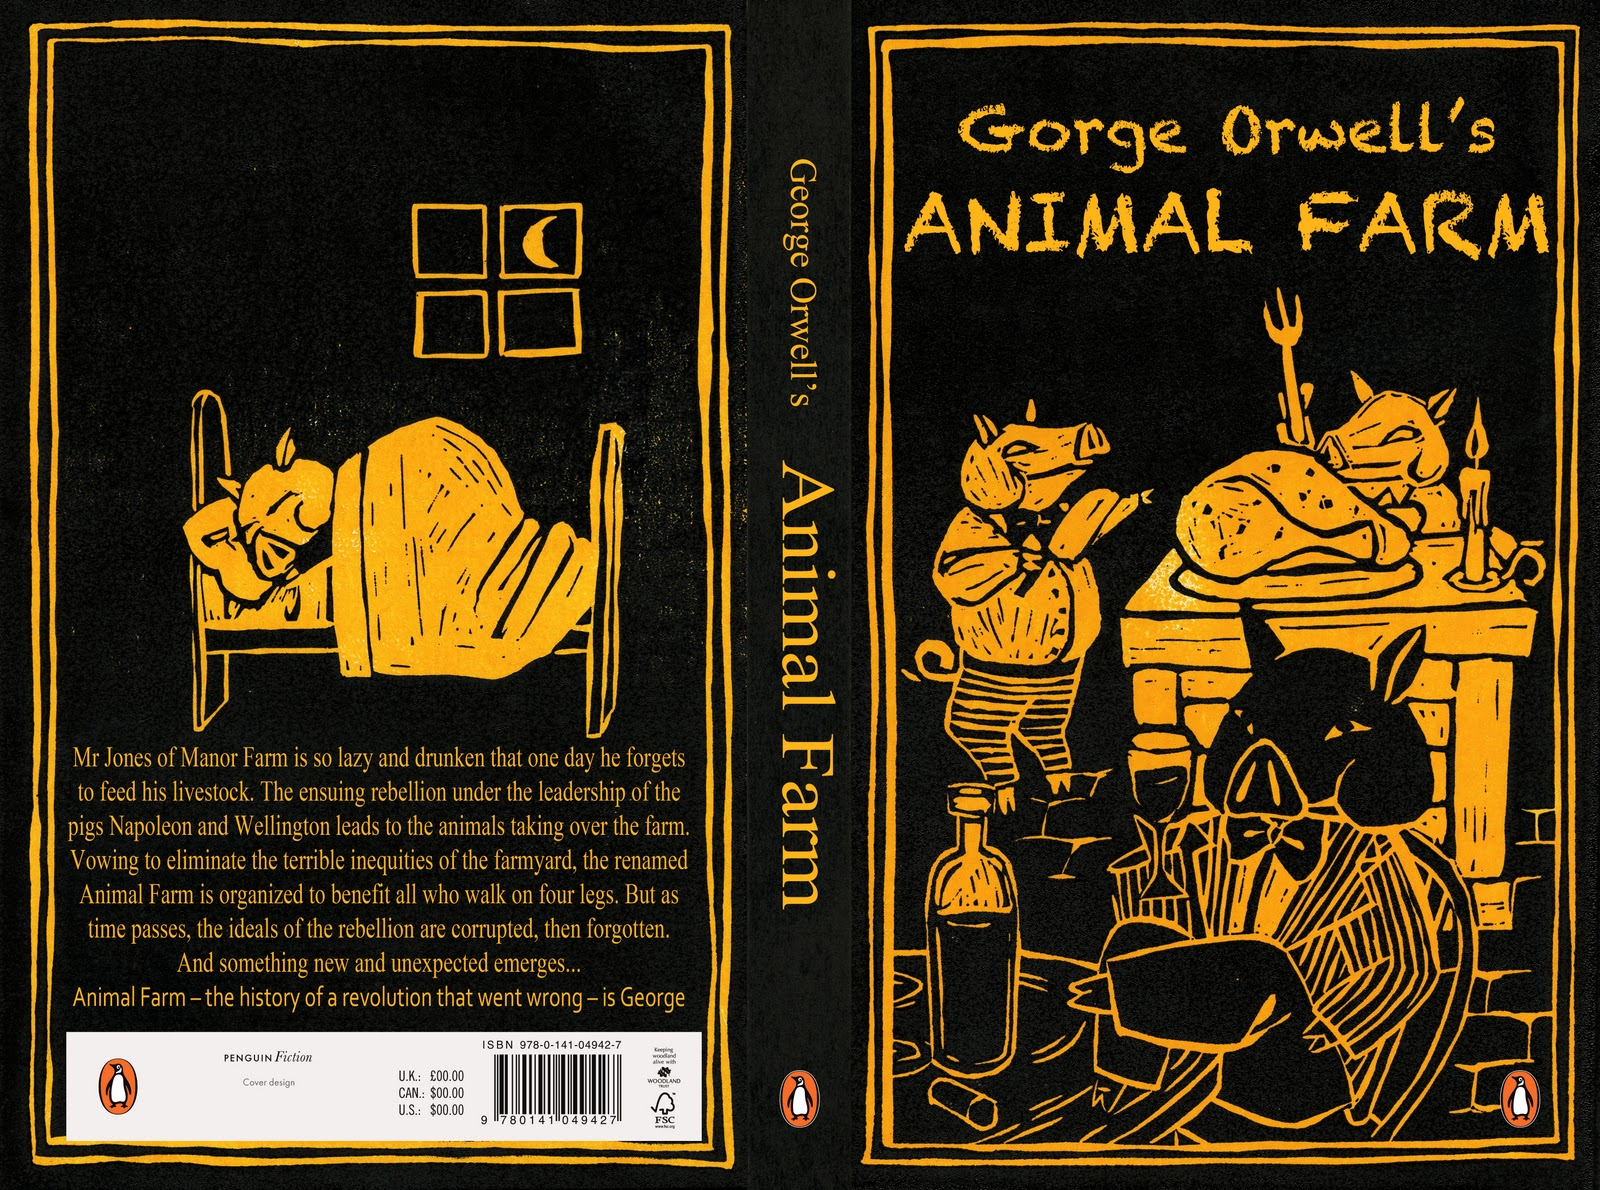 the storu animal farm Animal farm is a made-for-tv film released in 1999 by hallmark films and broadcast on the american cable channel tntit is an adaptation of the 1945 george orwell novel of the same name.